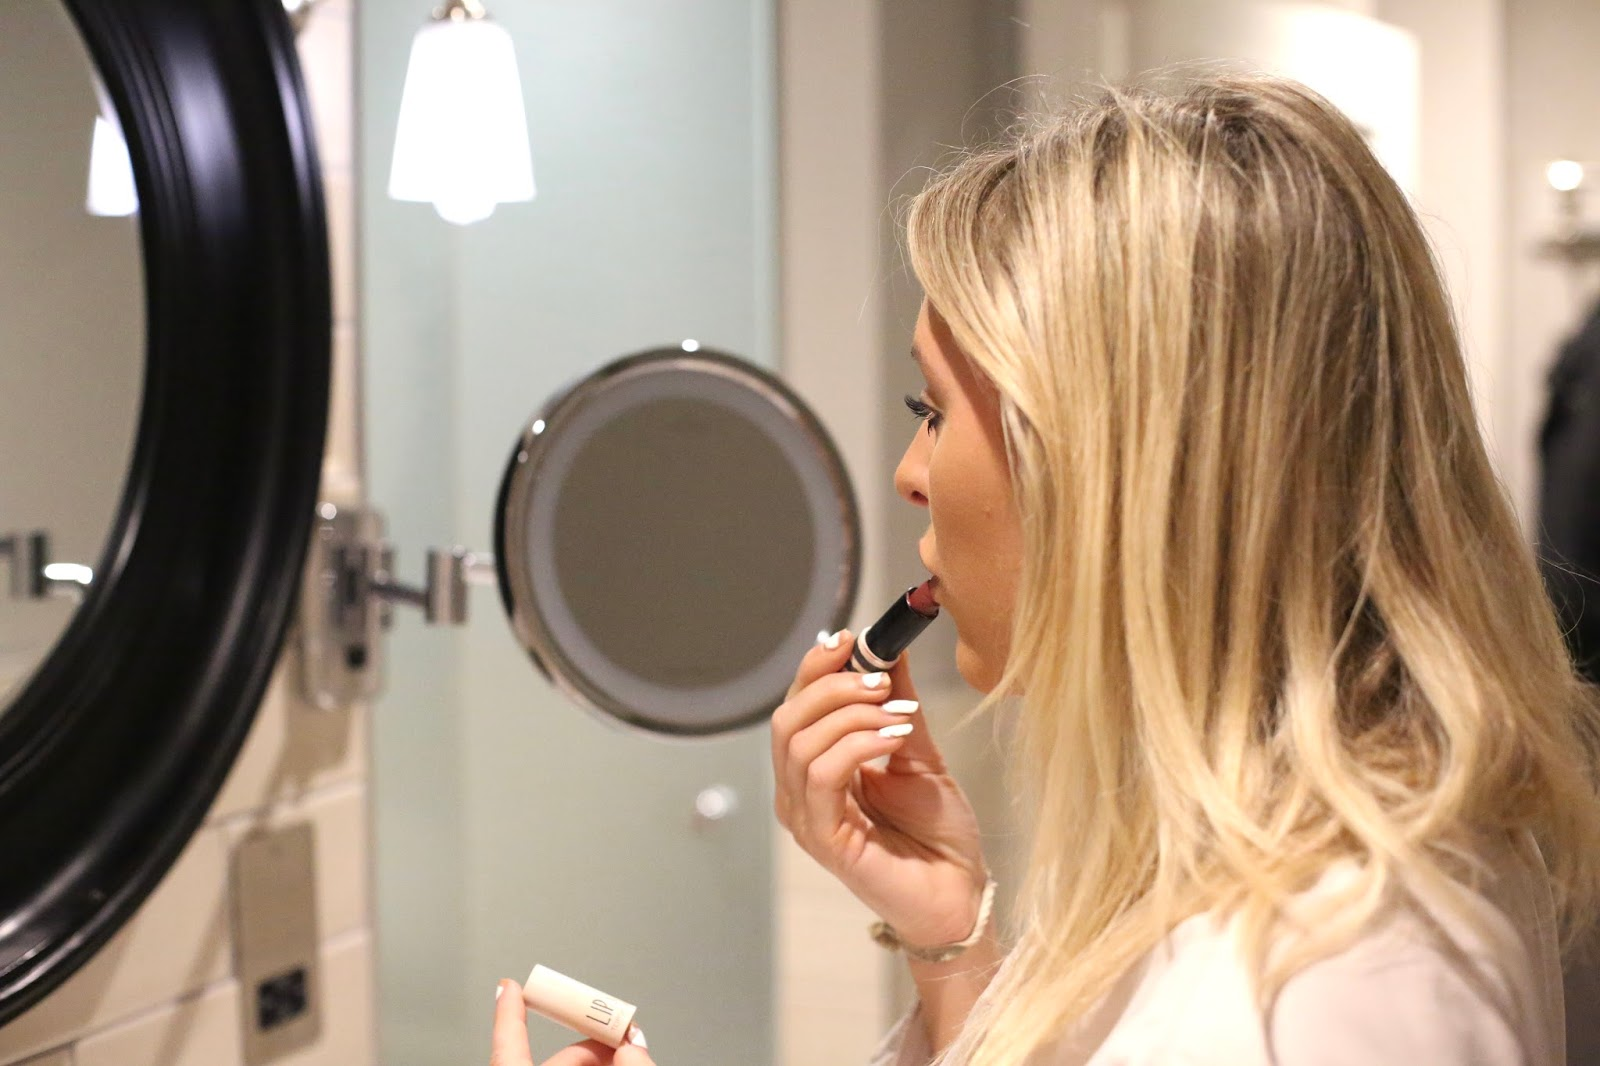 make up in mirror